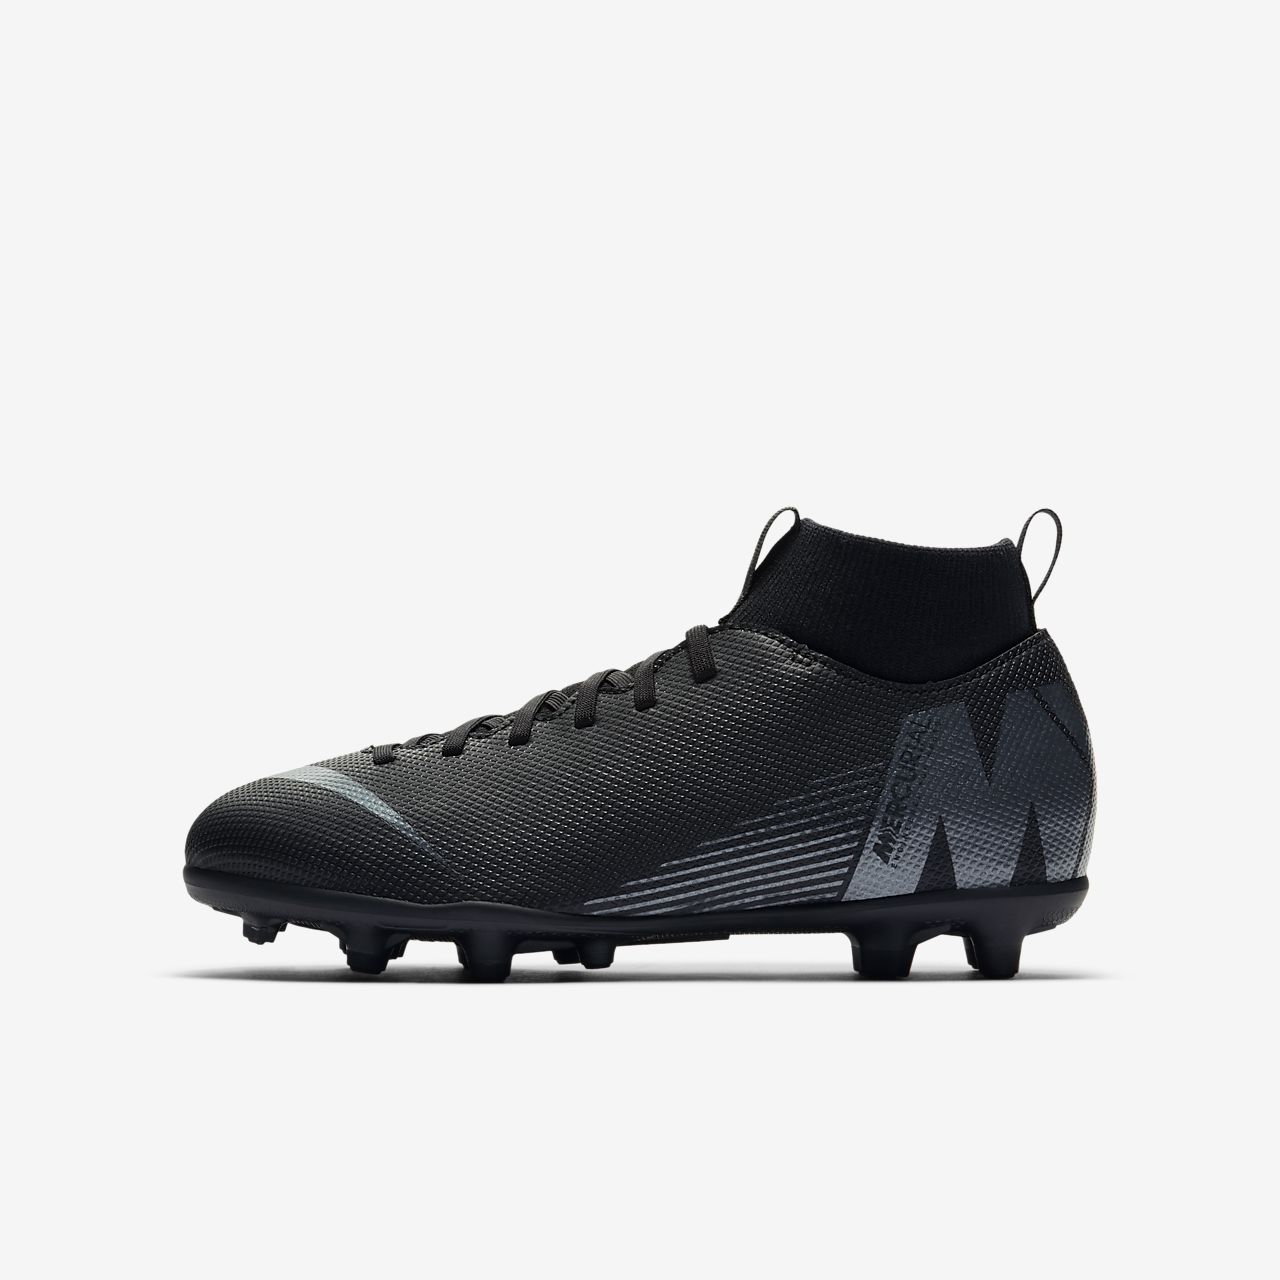 Superfly Club Scarpa Calcio Vi Jr Da Multiterreno Mercurial Nike wFYBx8vYqr